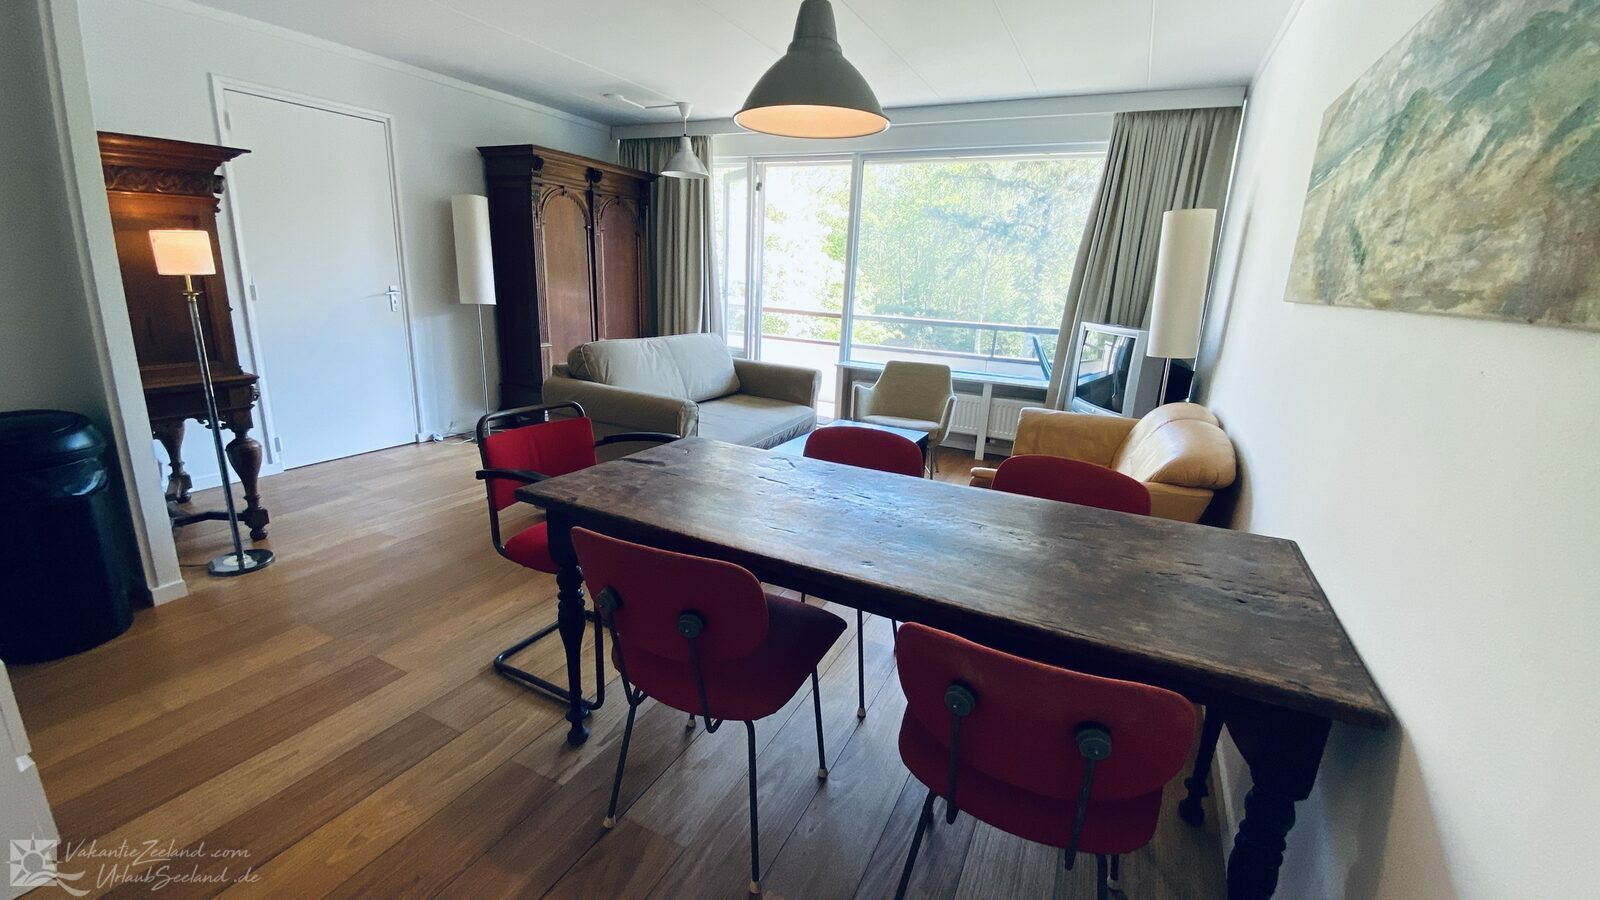 VZ678 Appartement Burgh-Haamstede